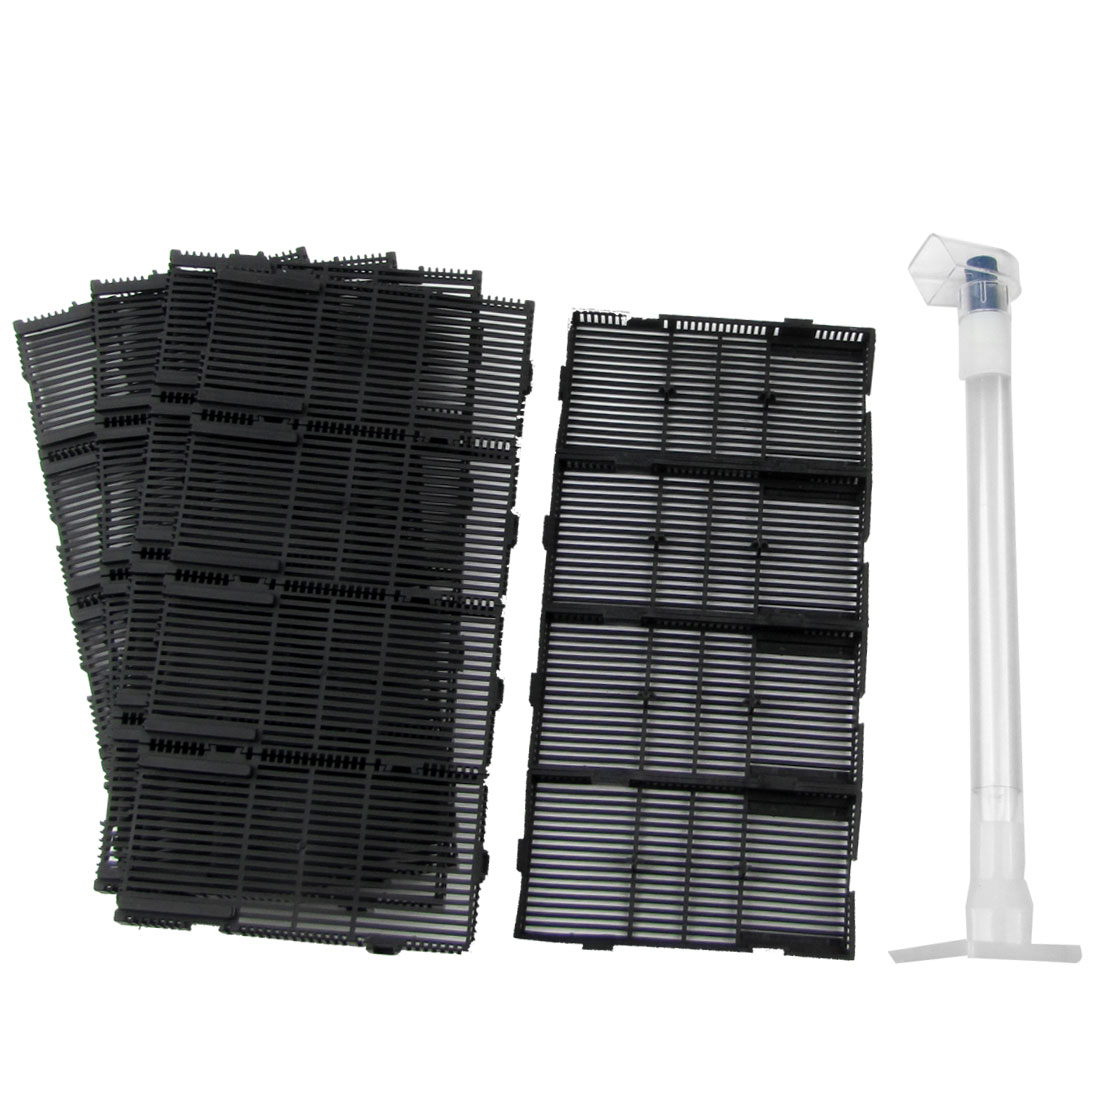 20 Pcs Black Plastic Aquarium Undergravel Filter + Air Line Hose + Tube